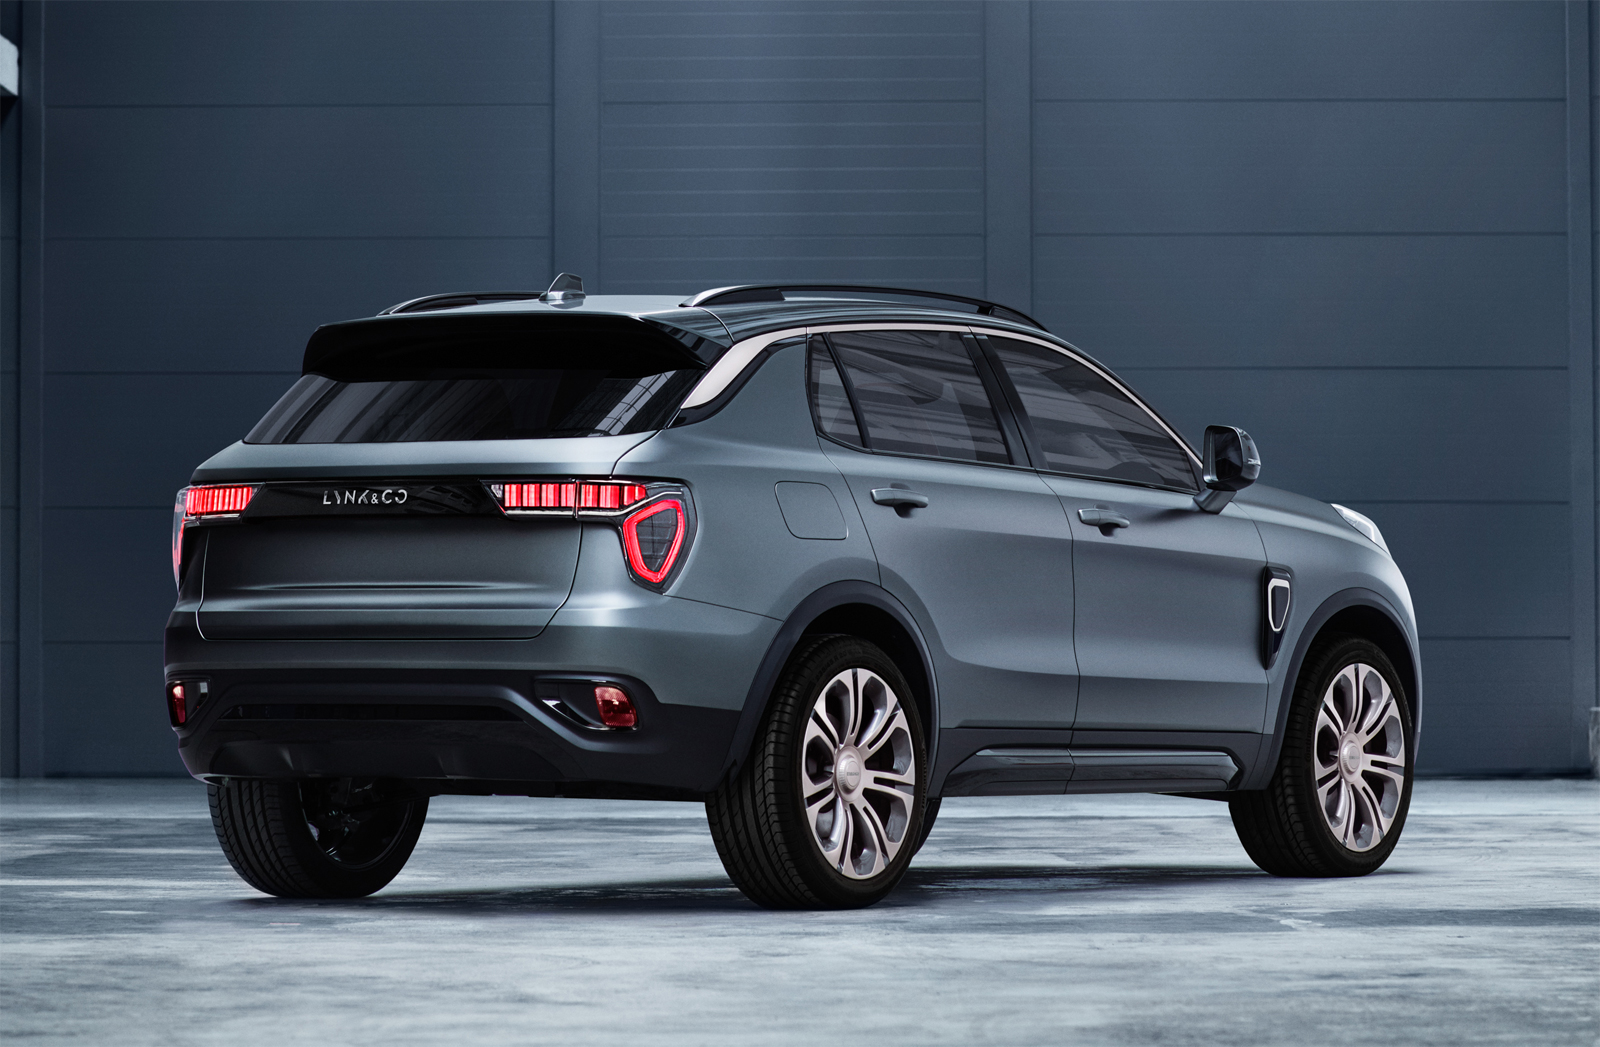 LYNK & CO, The Innovative Swedish Car Brand Looking To Change An Industry 14